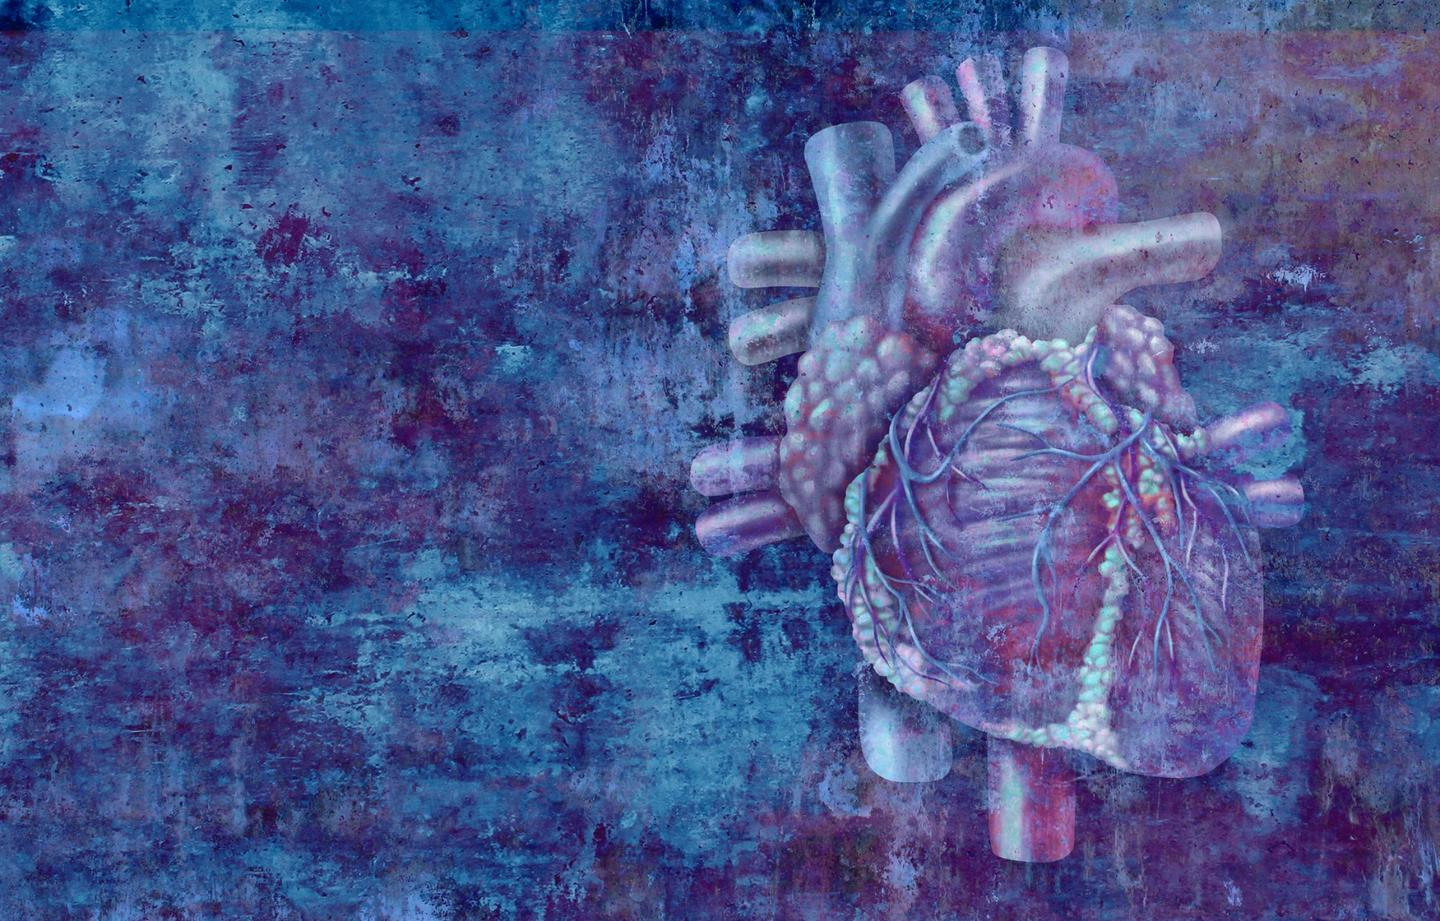 Placental stem cells have been found to regenerate damaged heart cells after a heart attack